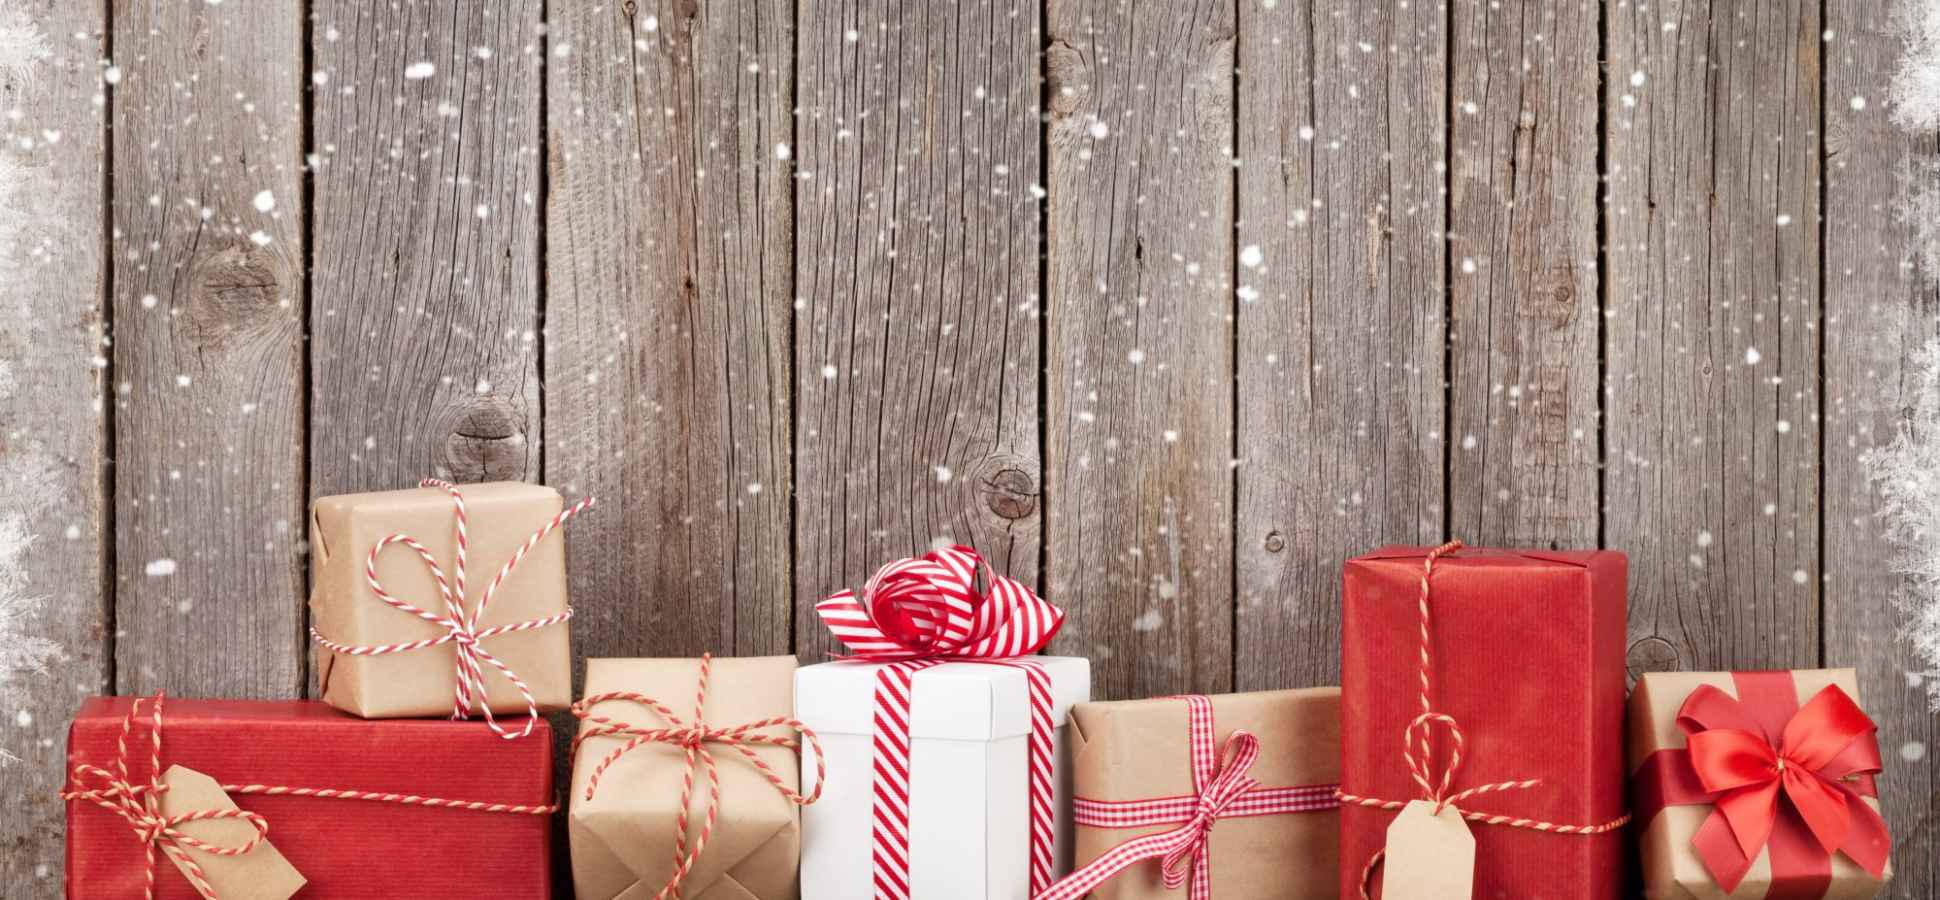 10 Gifts to Give Yourself that Money Can't Buy